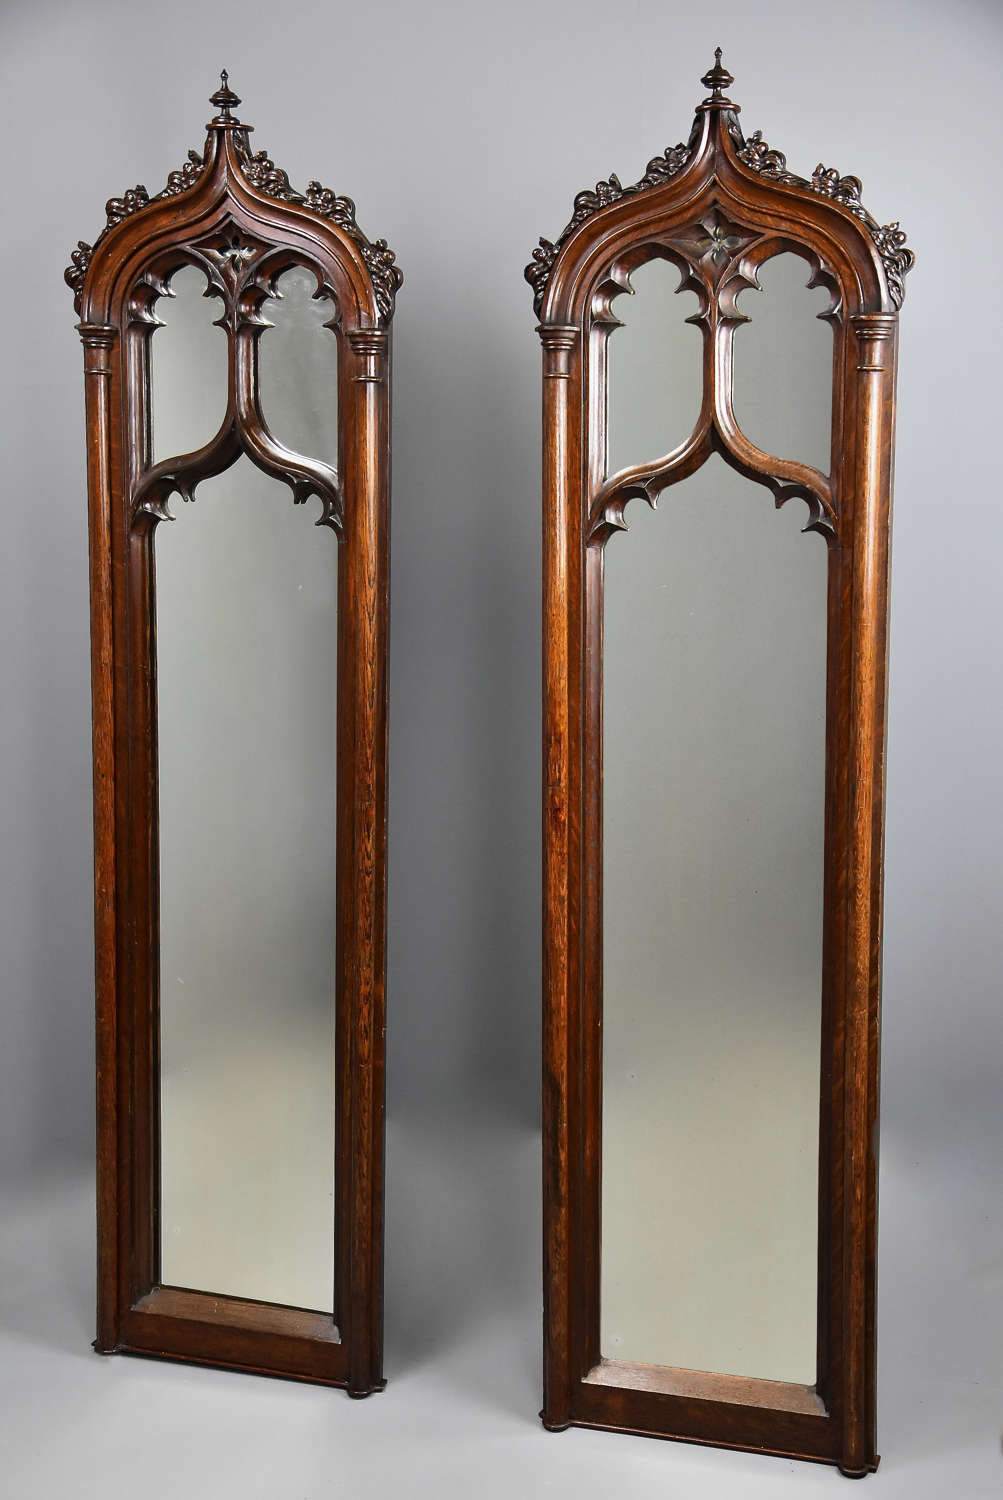 Fine pair of mid 19th century oak Gothic mirrors